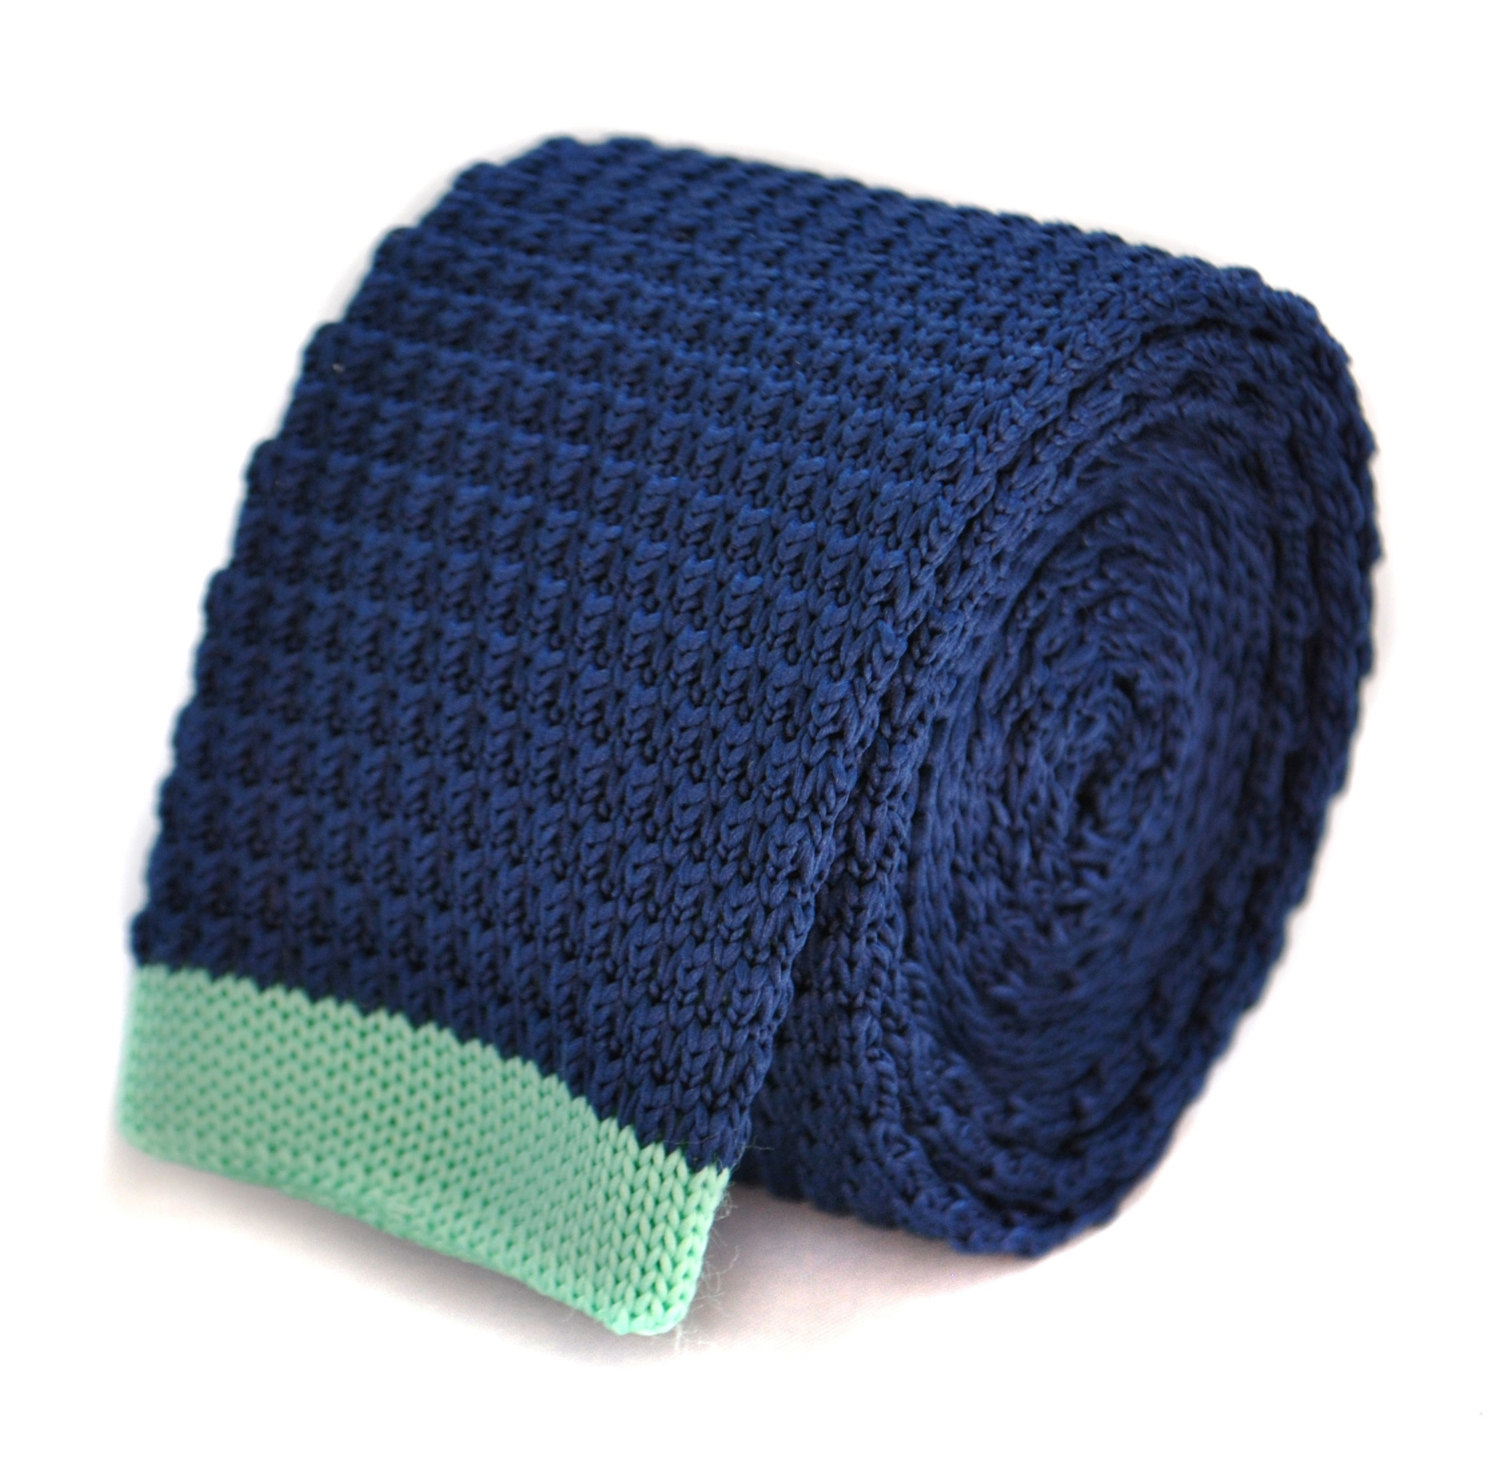 navy blue skinny knitted tie with mint pale green tip by Frederick Thomas FT2019